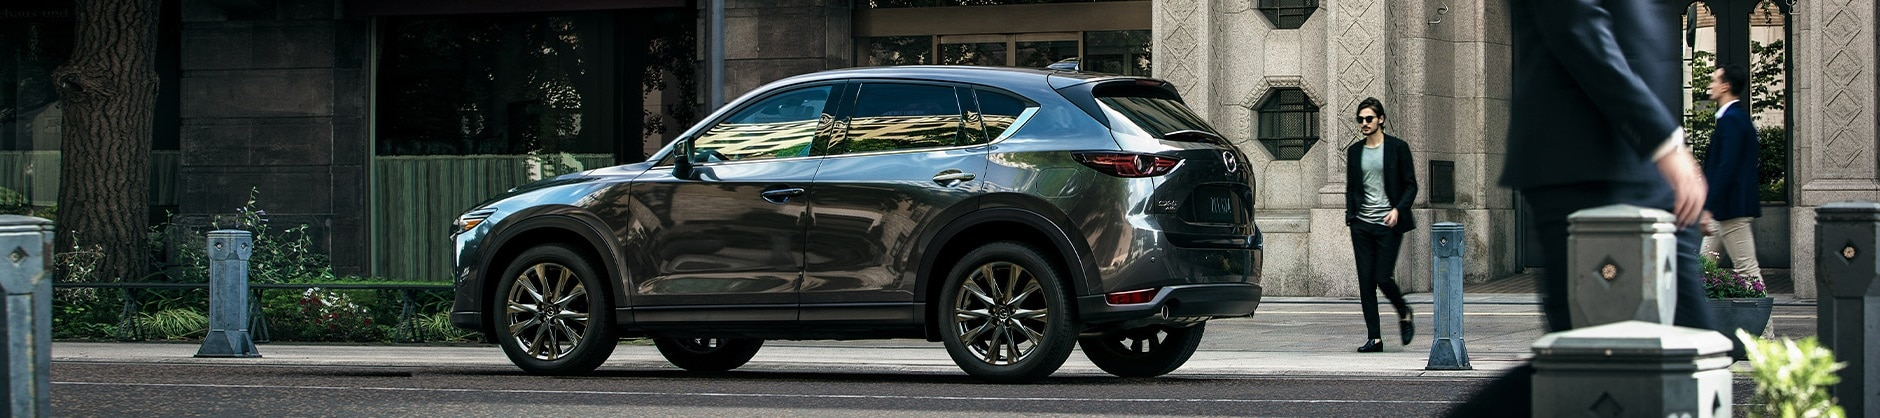 2020 Mazda CX-5 | Airport Mazda of Toronto